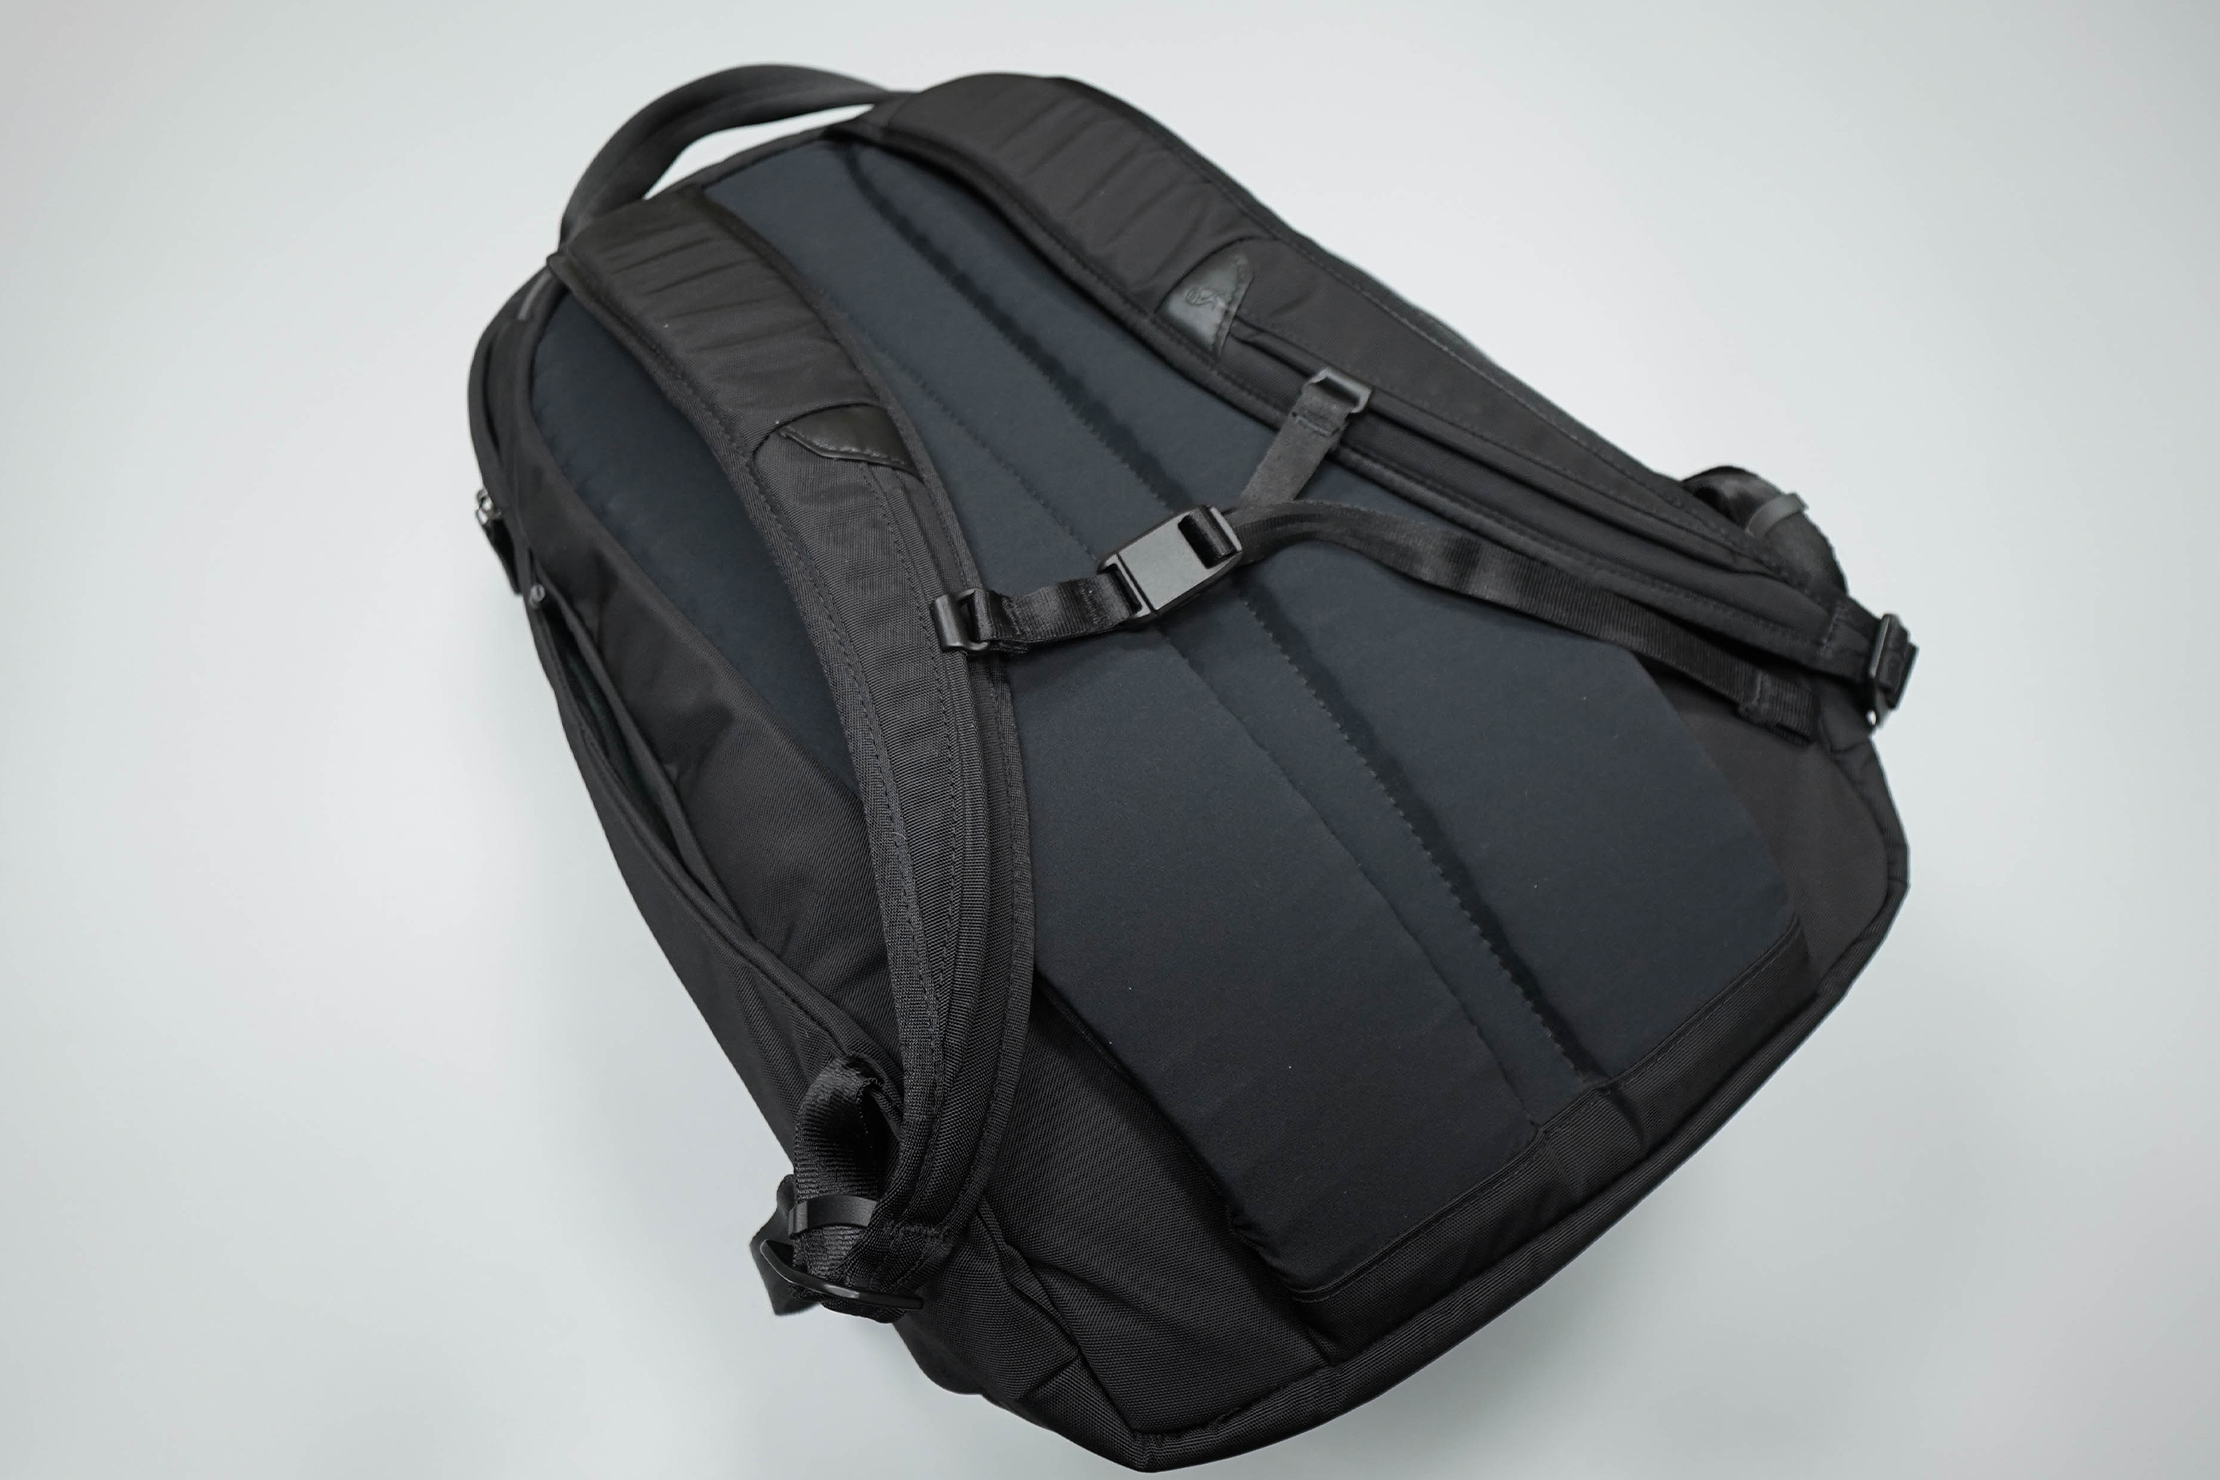 Bellroy Transit Backpack Harness System